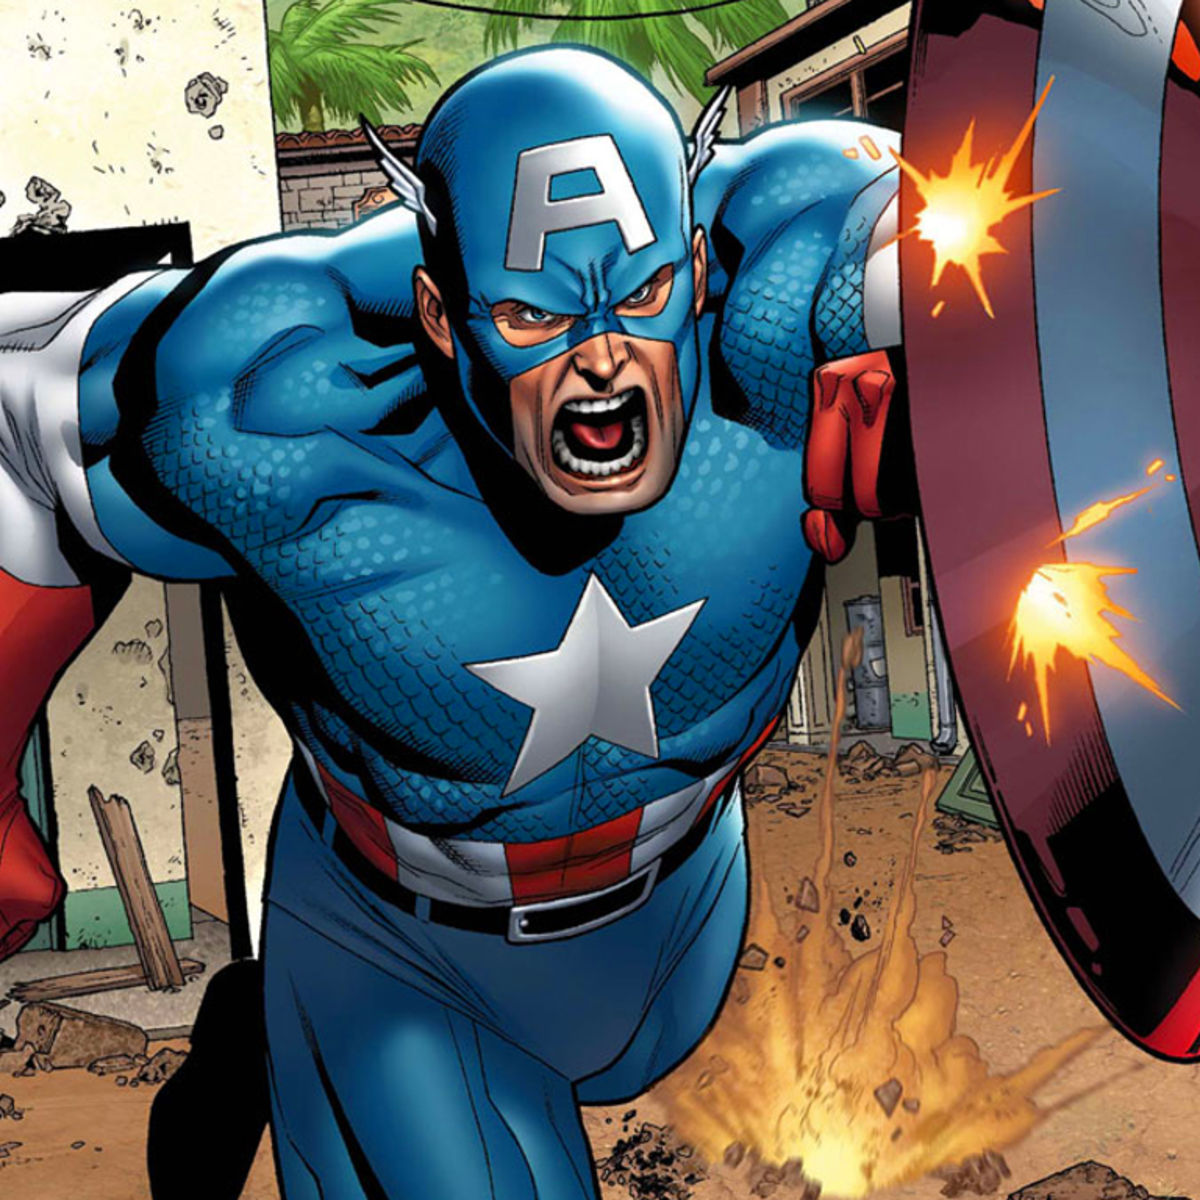 steve rogers is back with a new shield in first look at new captain